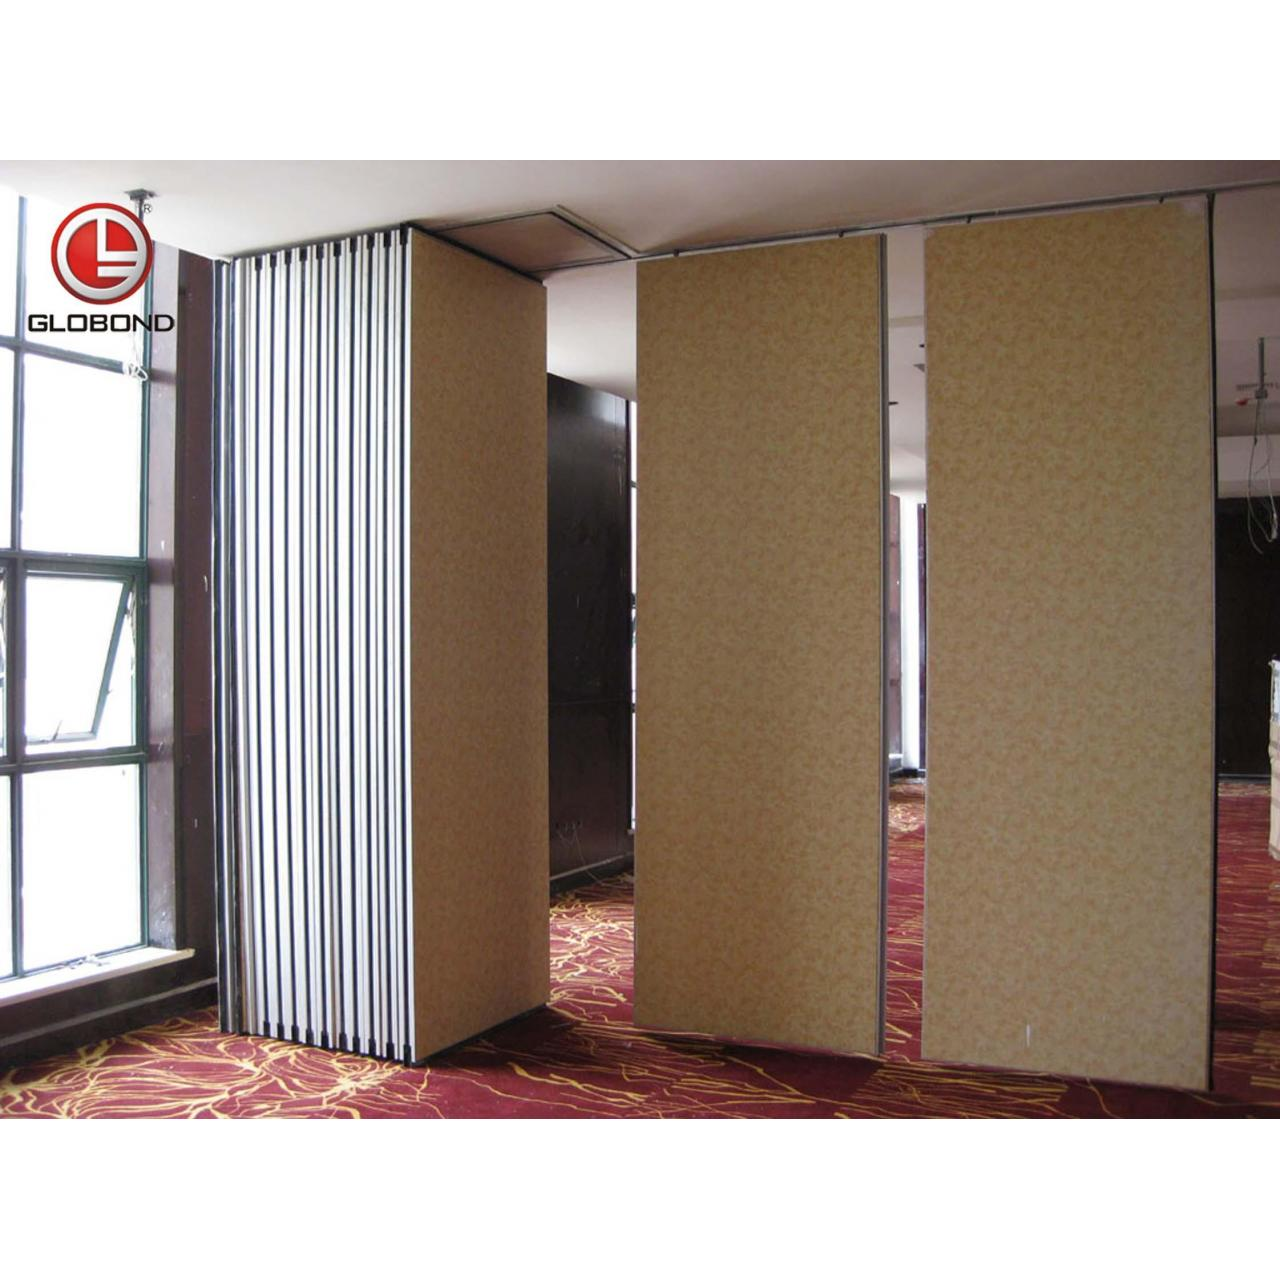 Wholesale AEP- wall partition GLOBOND AEP-Aluminum Energy-saving Panels. from china suppliers